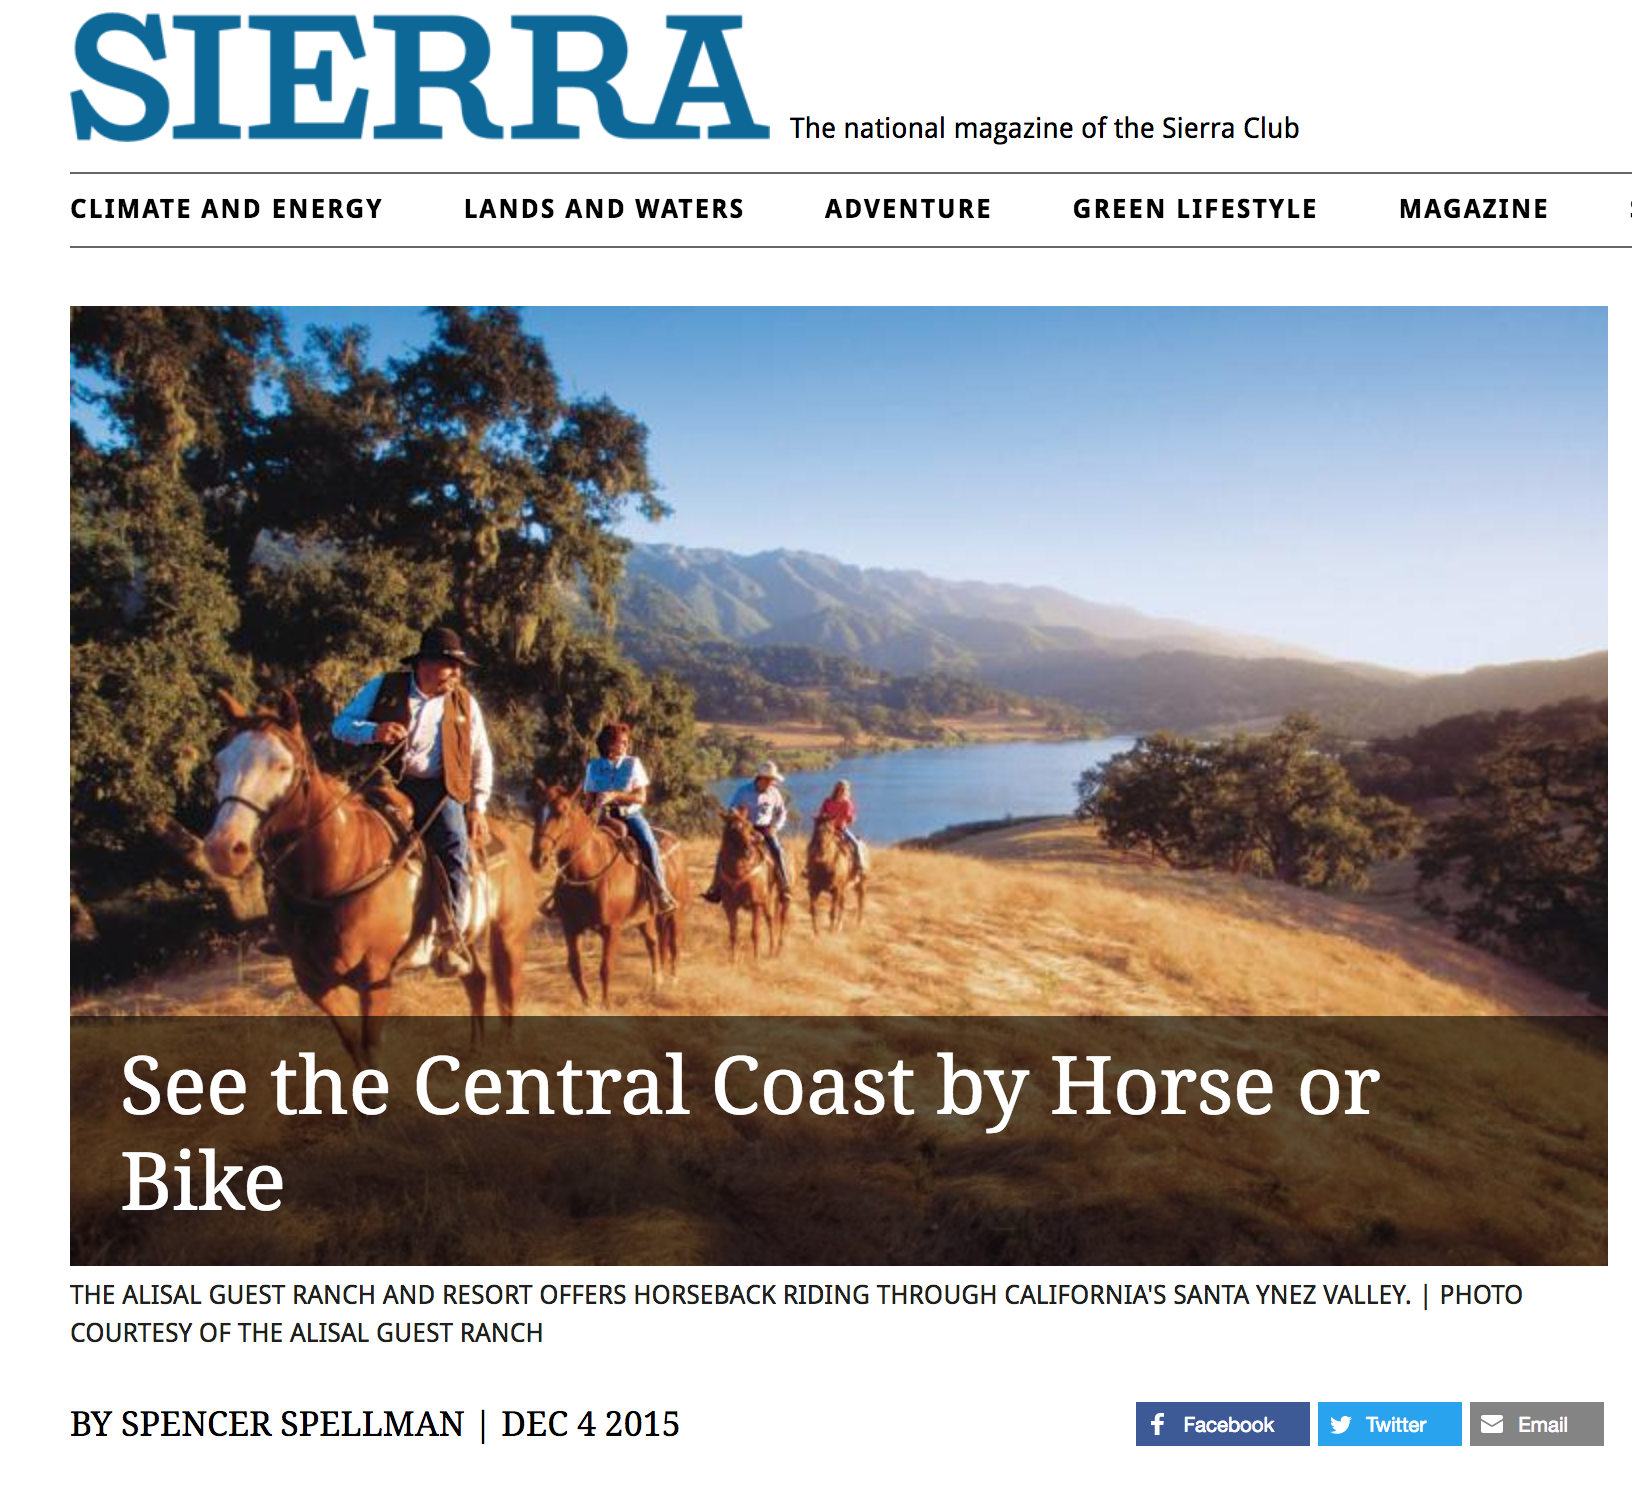 Sierra Magazine: See the Central Coast by Horse or Bike